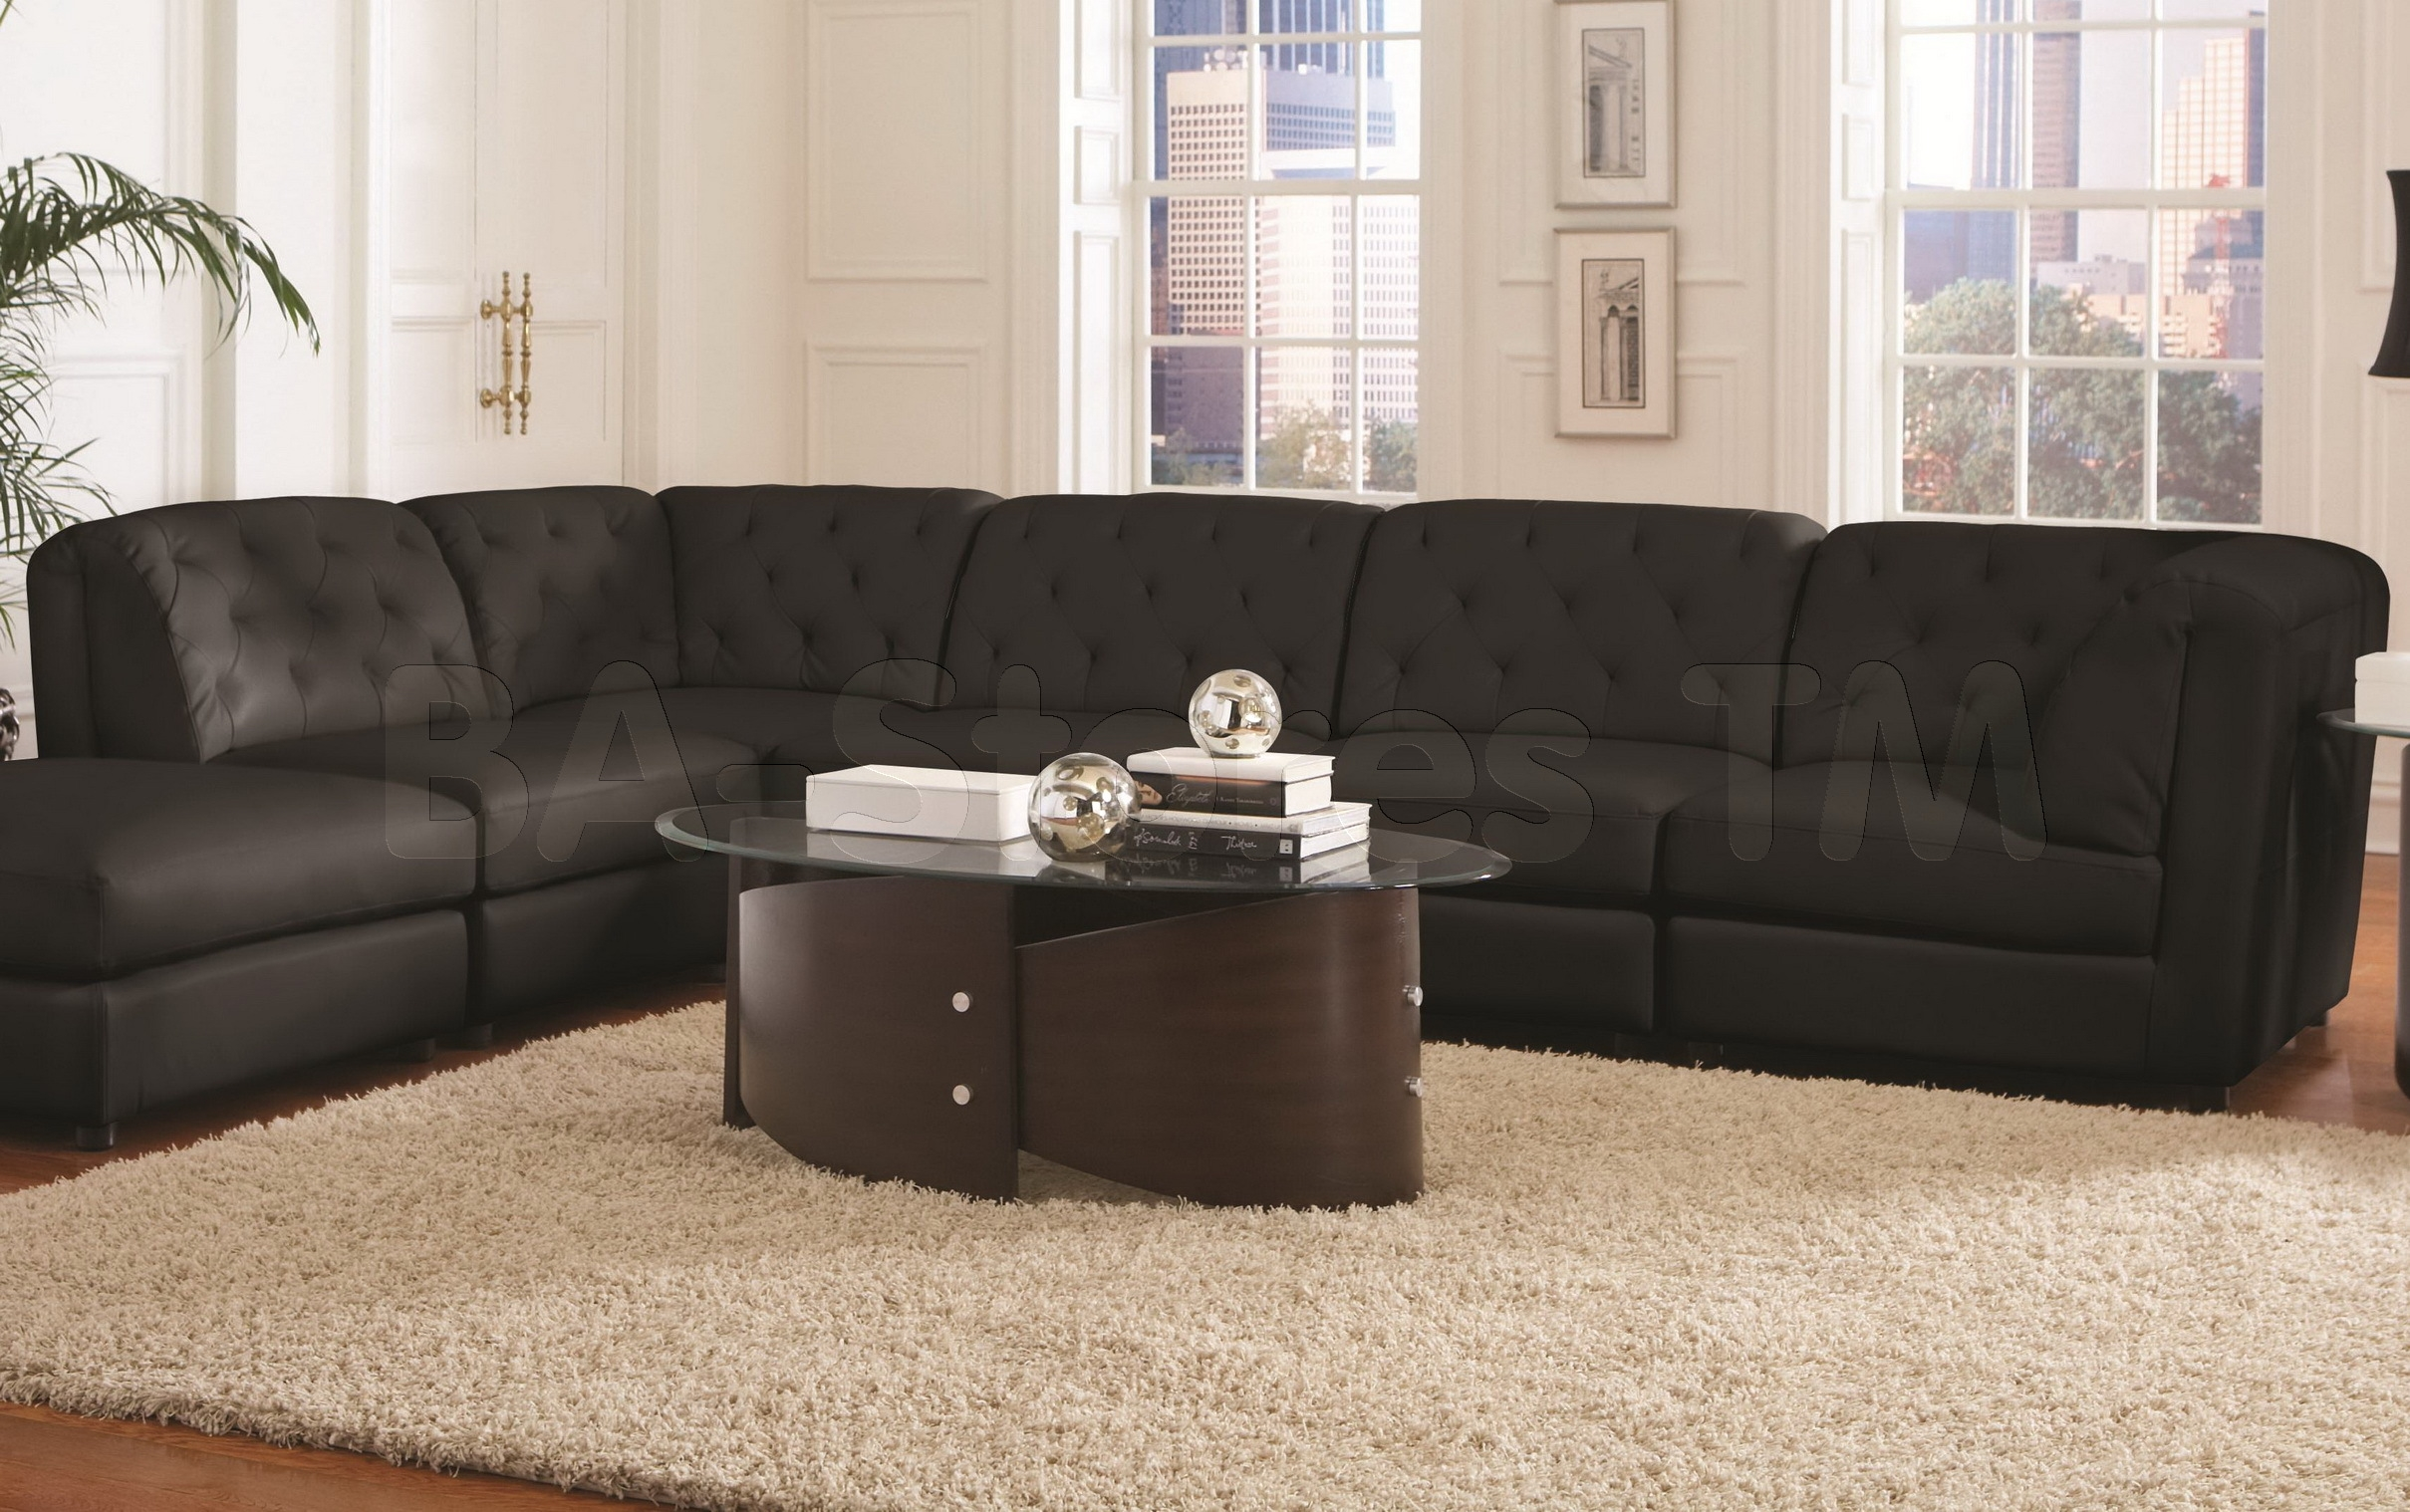 51 Sectional Sofas Cheap Attachment Cheap Sectional Sleeper Sofa Inside Black Sectional Sofa For Cheap (Image 2 of 15)